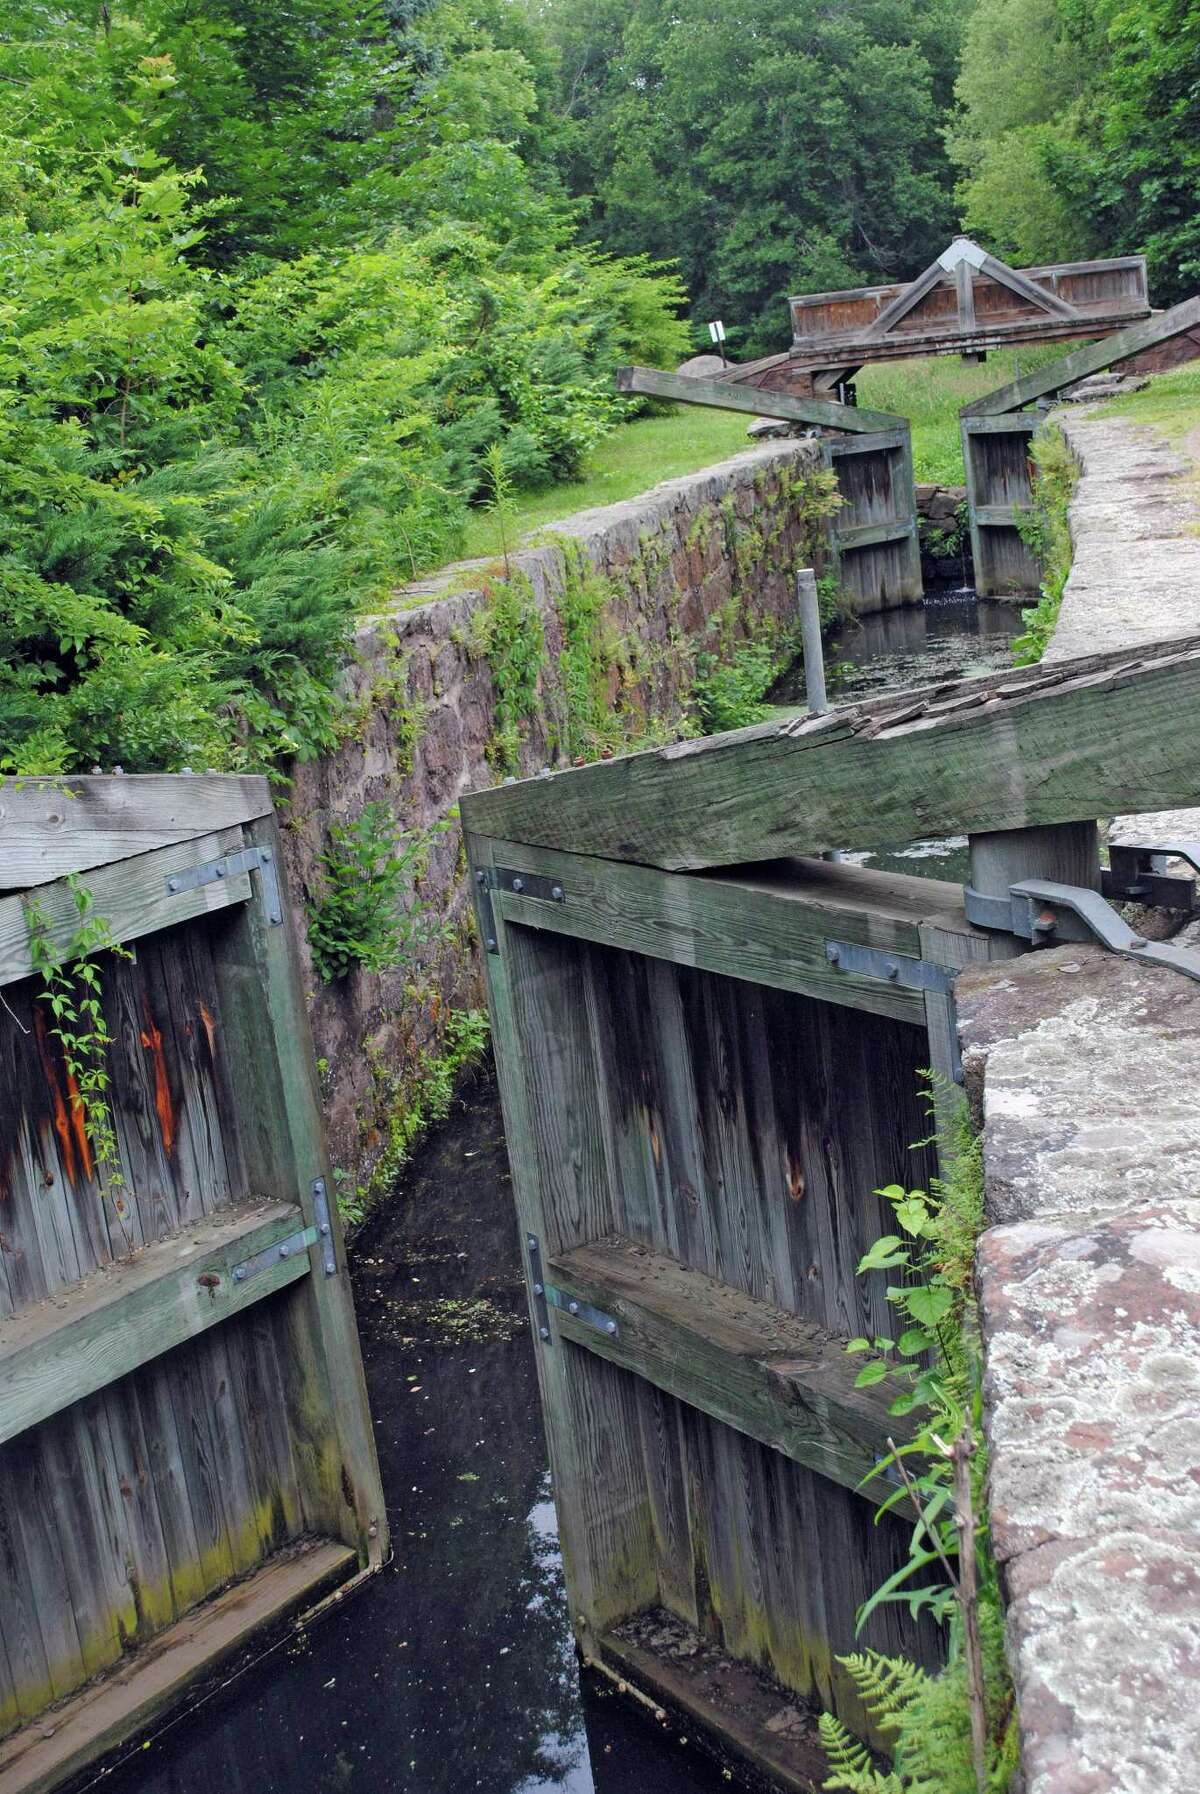 Along the Farmington Canal trail, the Canal Lock 12 in Cheshire is the only restored lock remaining today. It operated from 1828 to 1848 before trains became the preferred form of transportation. The Farmington Canal Heritage Trail is the granddaddy of paved bike trails in the Hamden and Cheshire areas, extending smoothly now from New Haven to Southington, where it will eventually continue an 81-mile paved stretch to Northampton, Mass. (There still is work to be done in Southington.)